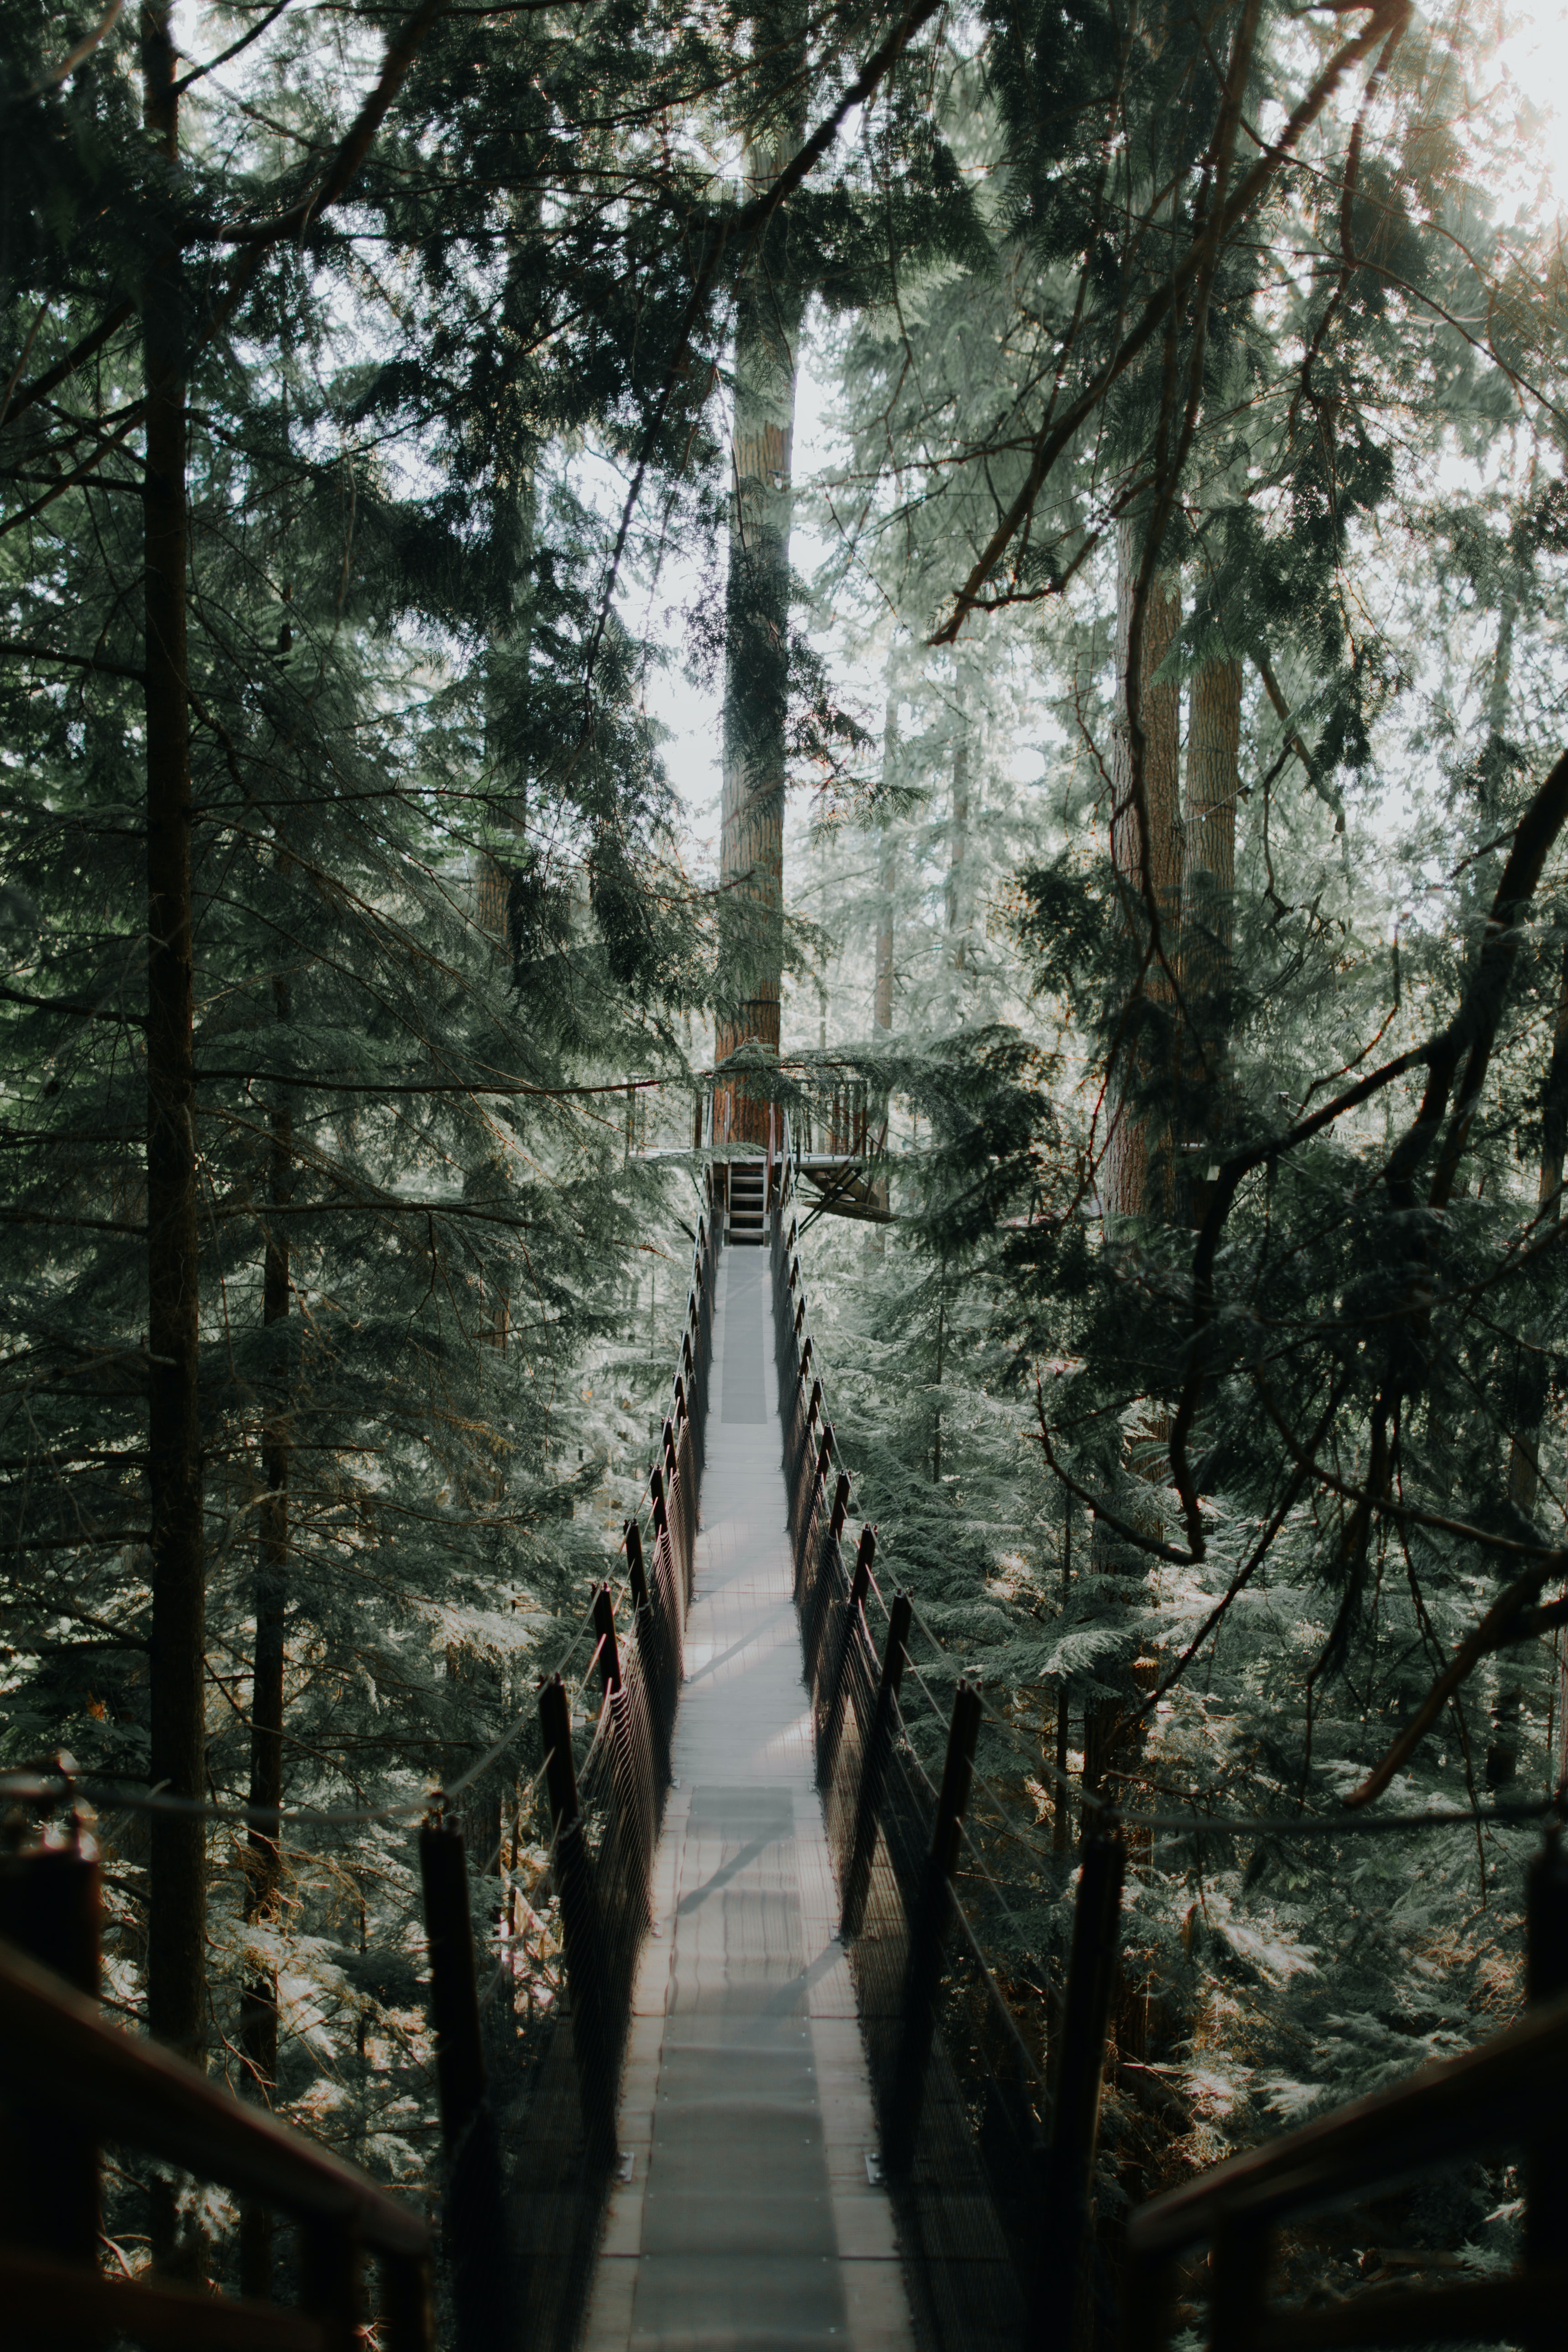 photo of brown wooden tree ladder in forest